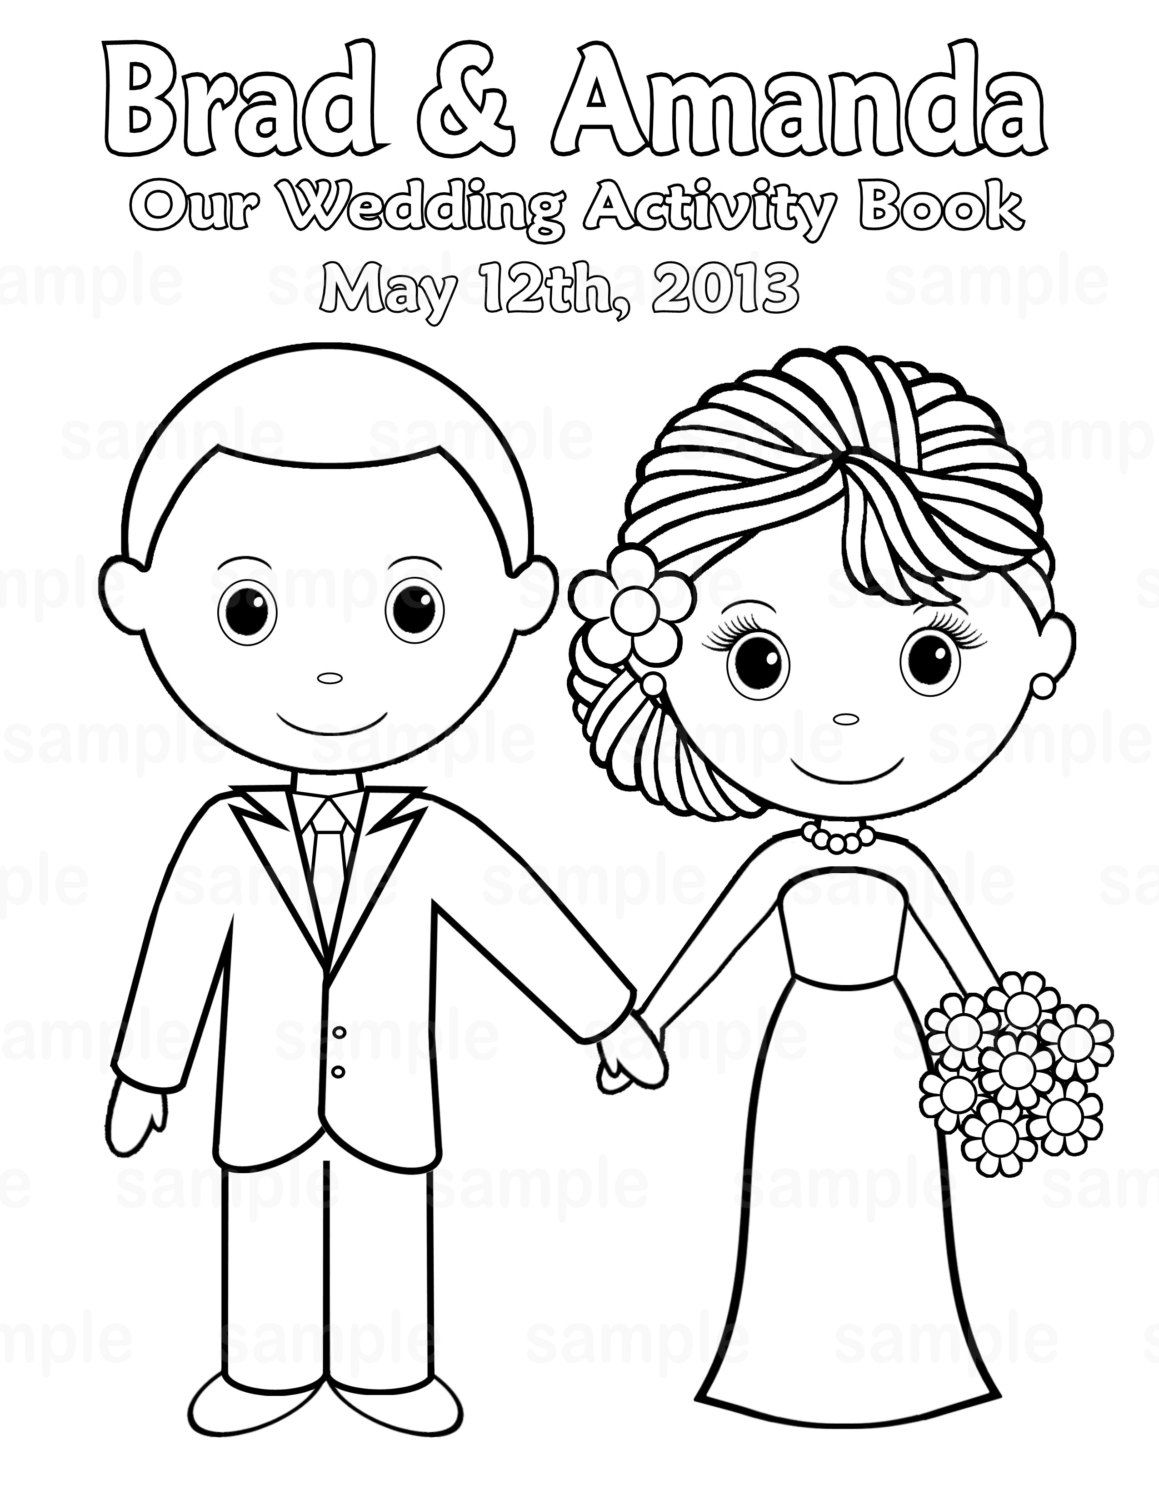 free printable coloring pictures wedding printable personalized wedding coloring activity book favor kids 85 x